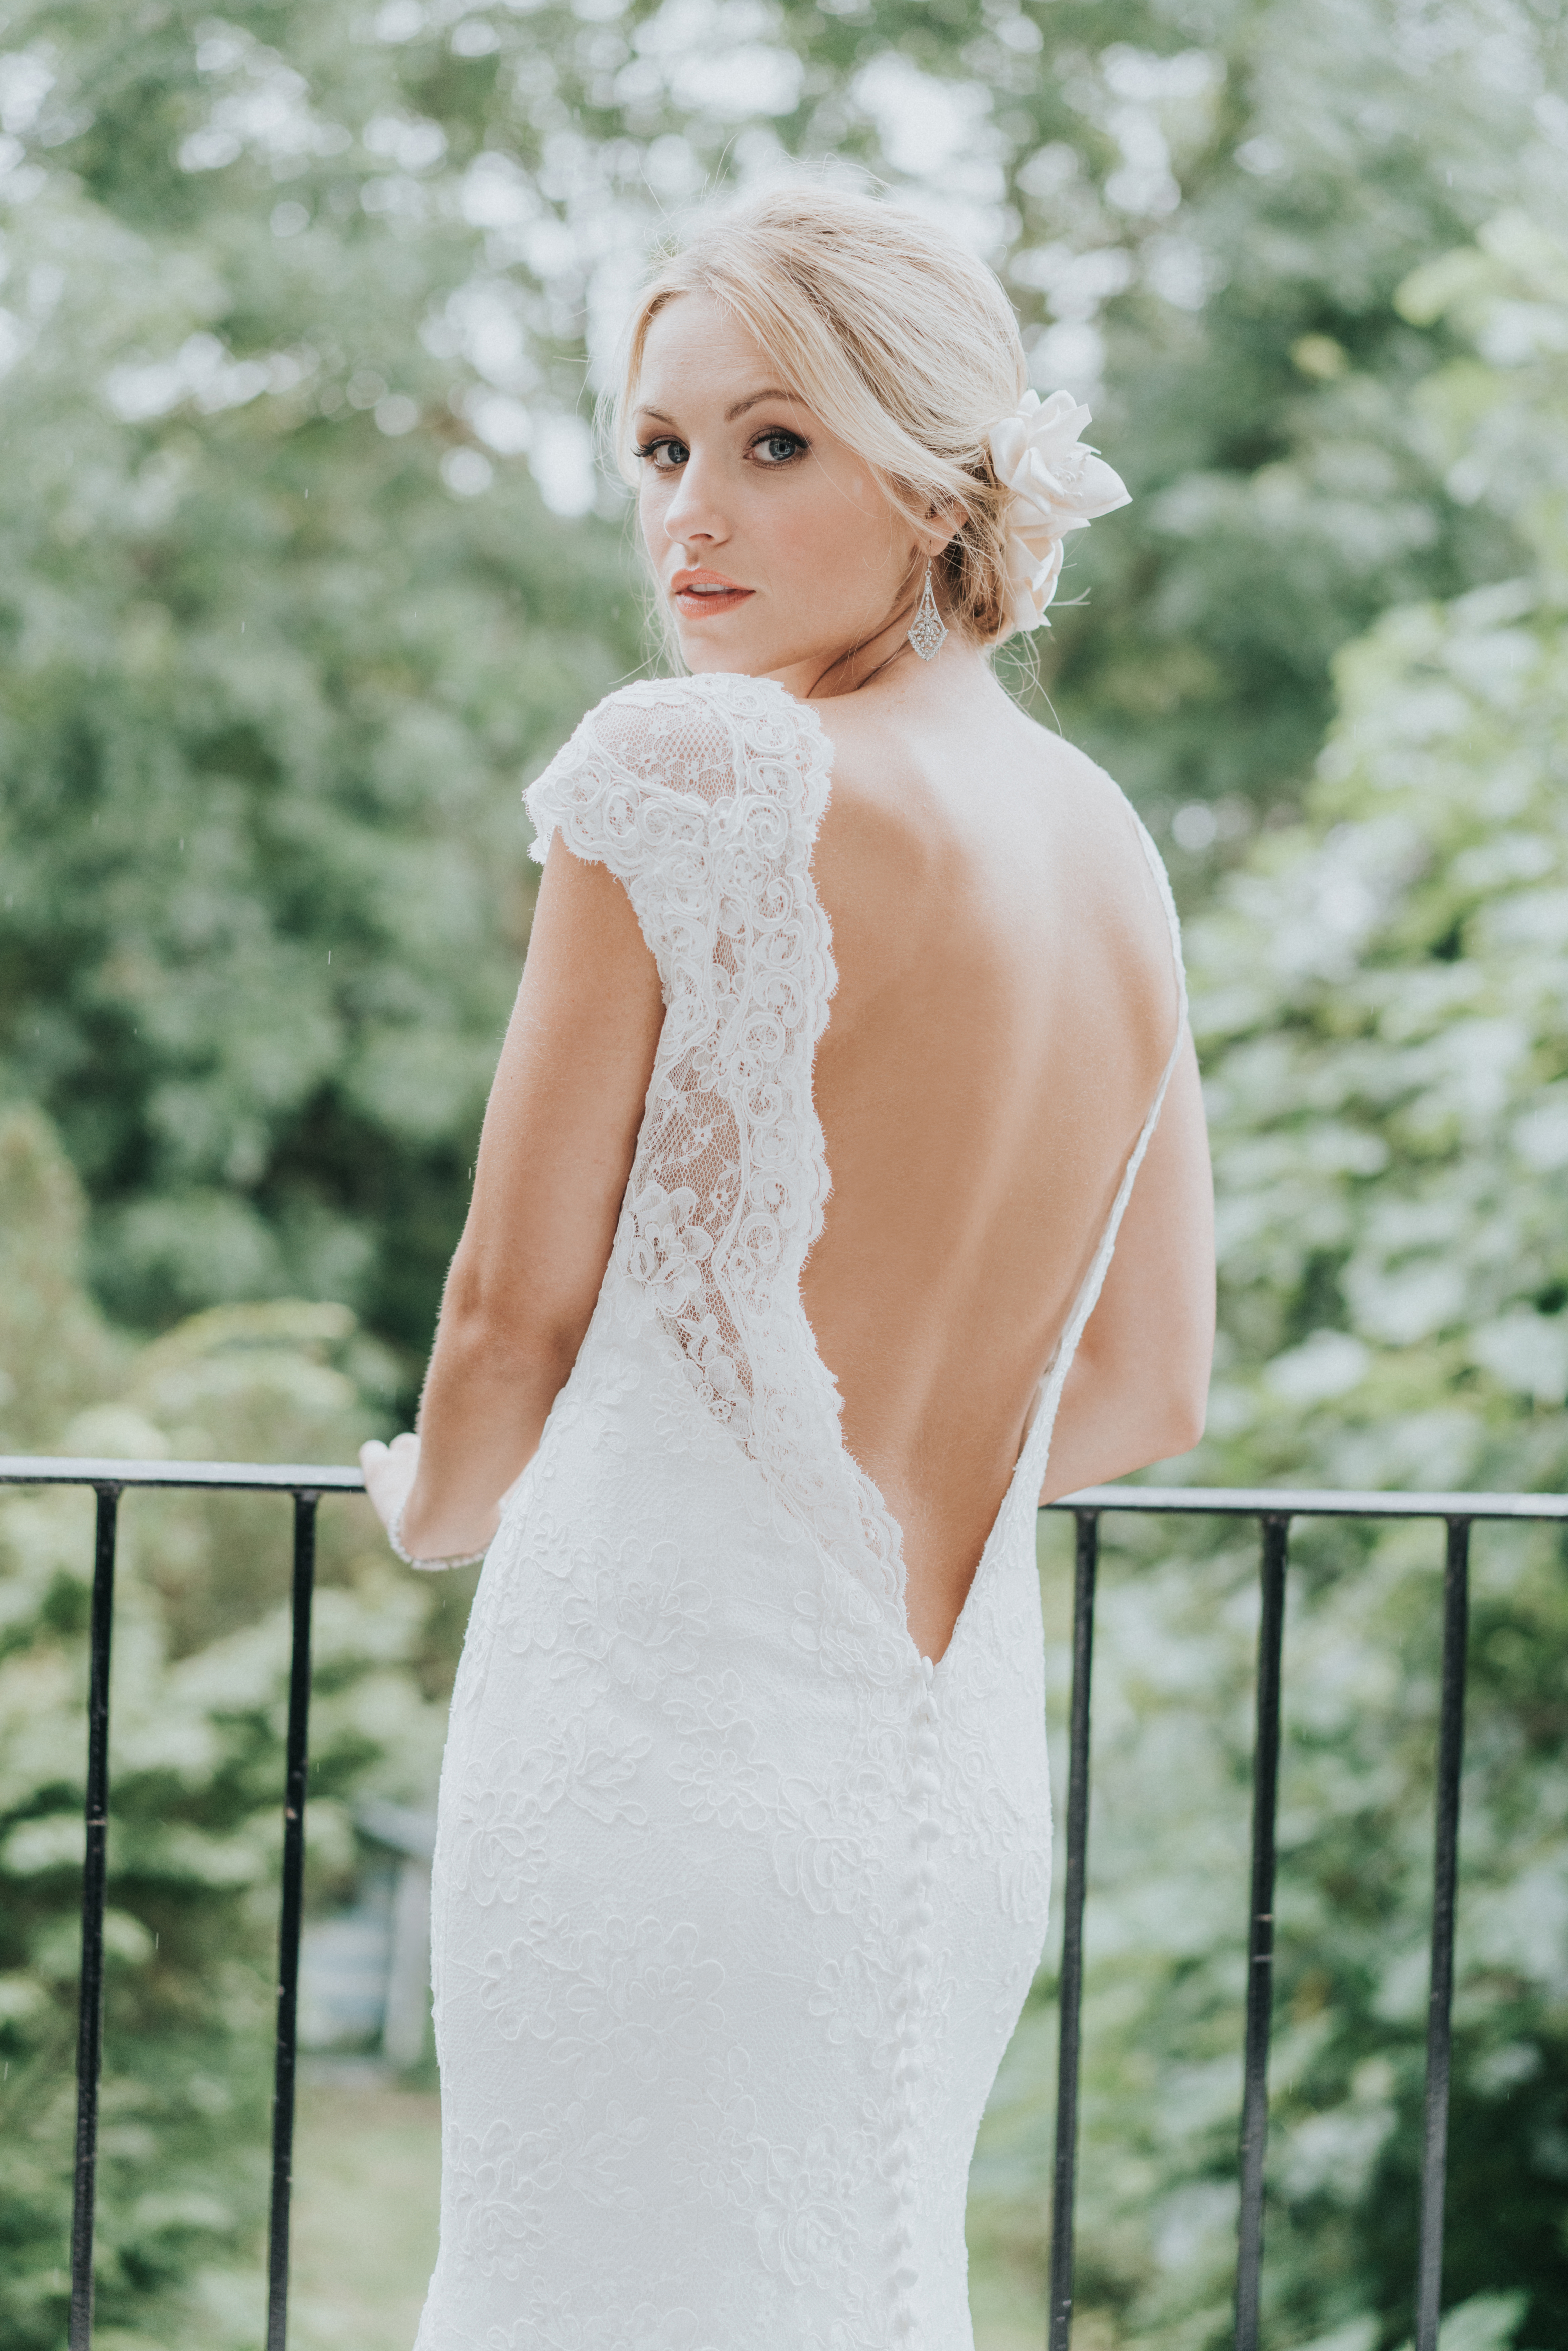 Sammie Lou Bridal Couture to host an exclusive White Rose Designer Weekend